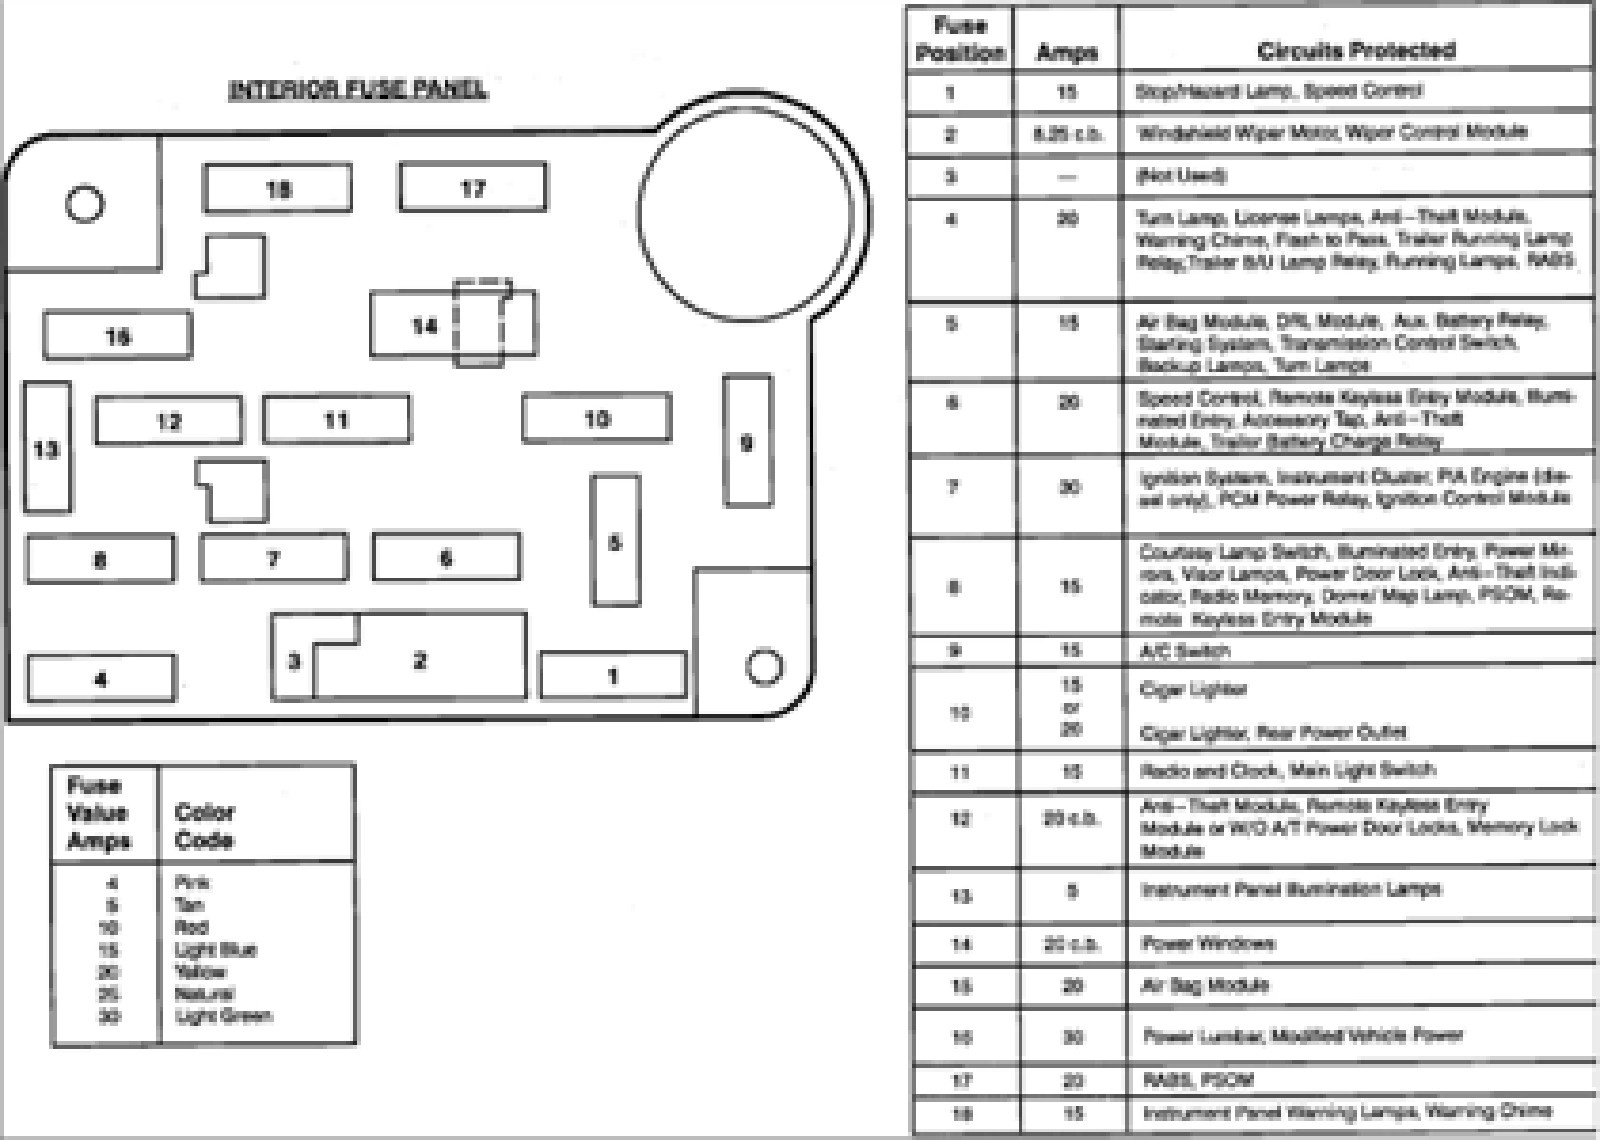 pic 8862473225641007897 1600x1200 1989 ford ranger fuse box diagram 1994 ford ranger fuse box layout 1990 ford ranger fuse box diagram at creativeand.co